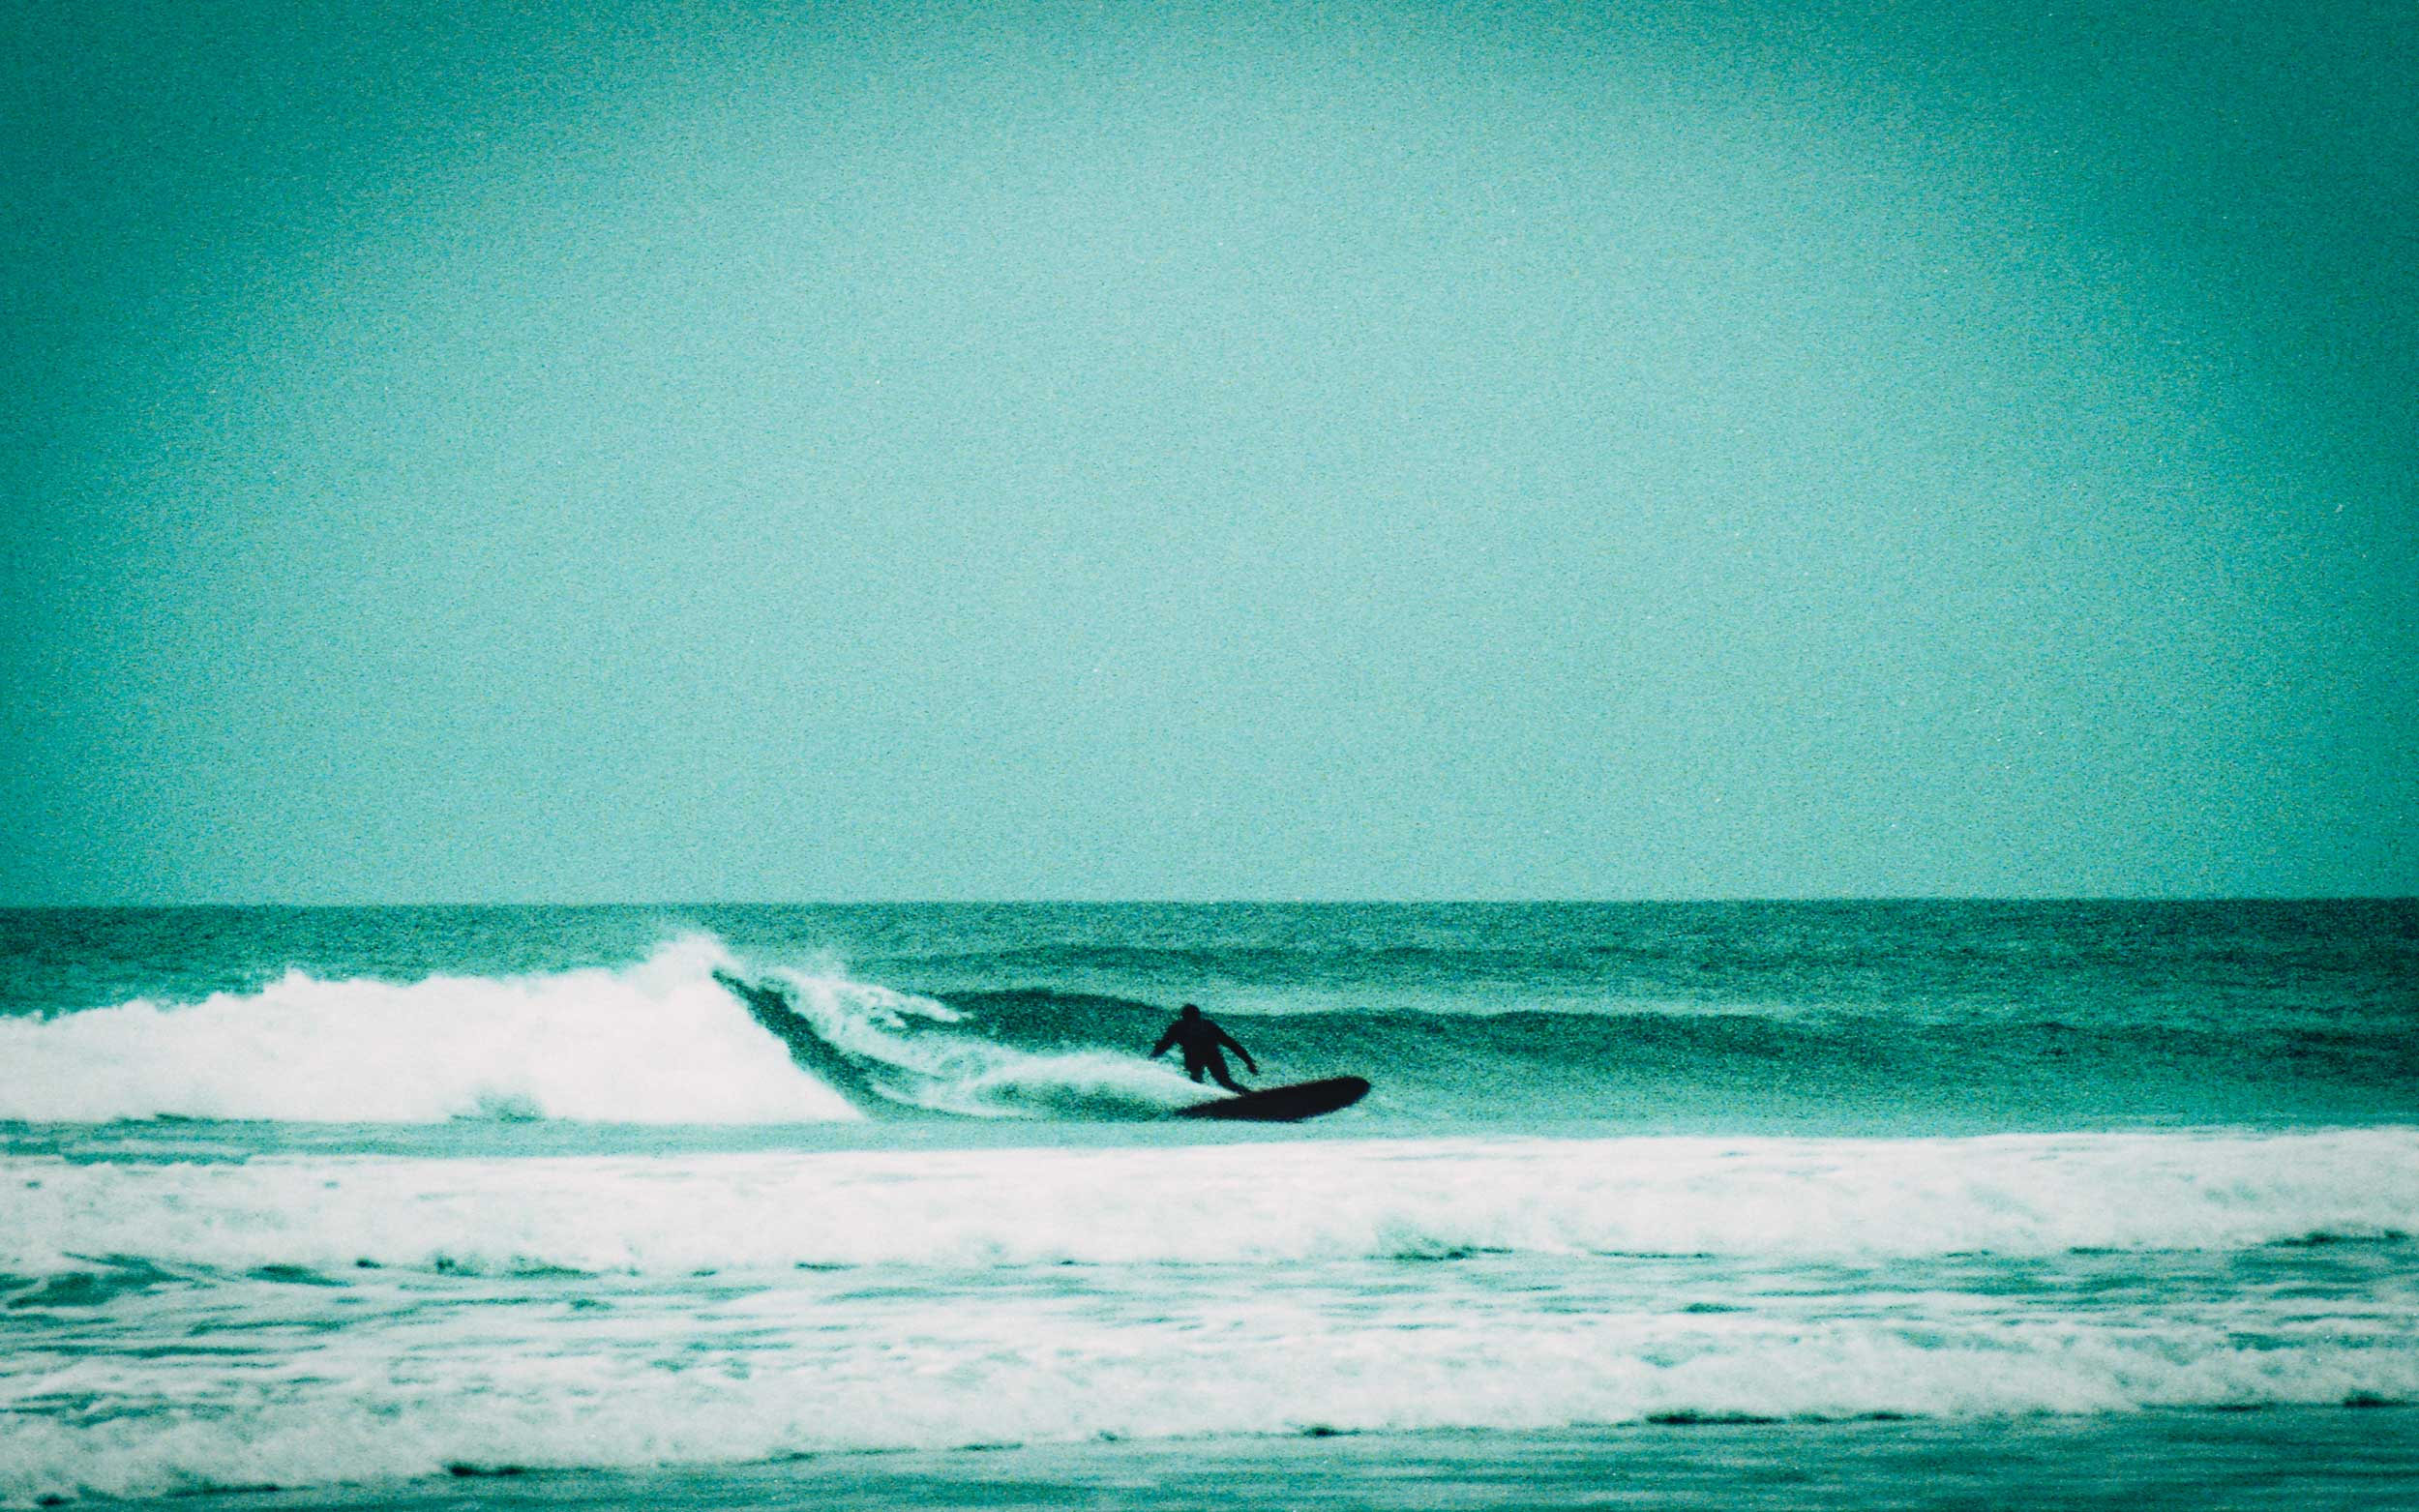 Surfer+bottom+turning+at+Watergate+Bay+_+Karl+Mackie+Photography.jpeg